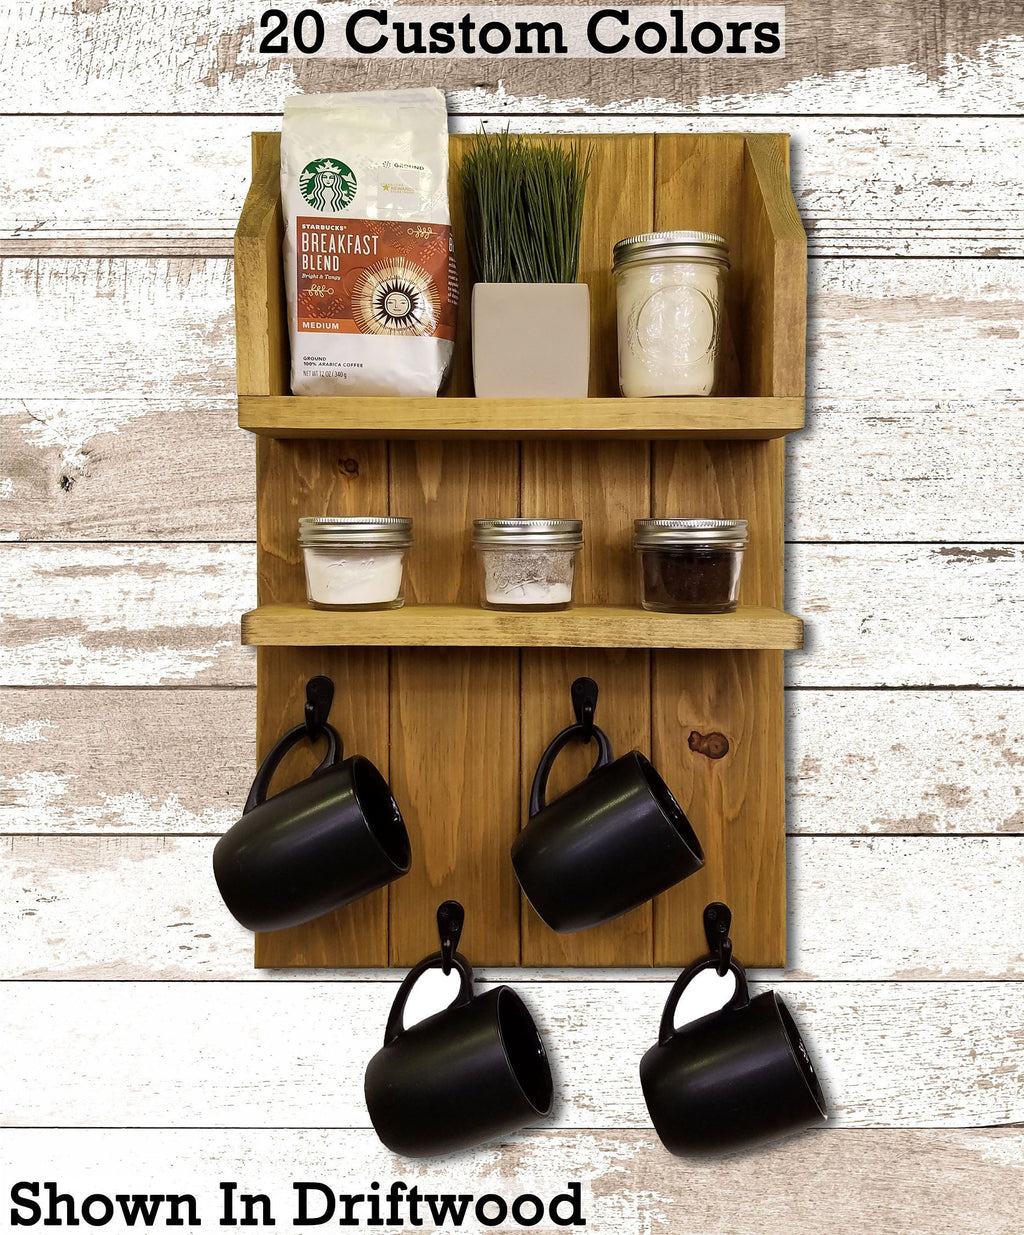 Sunrise Coffee & Tea Wall Organizer Station - Renewed Decor & Storage